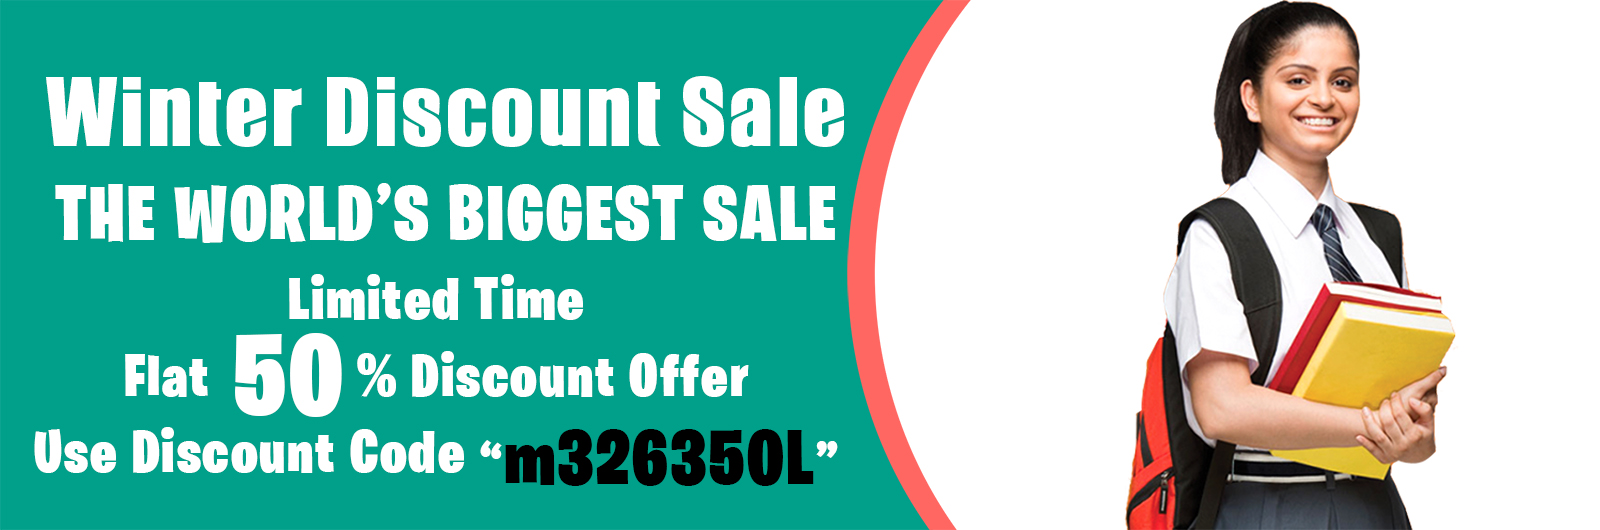 myexamcollection discount offer